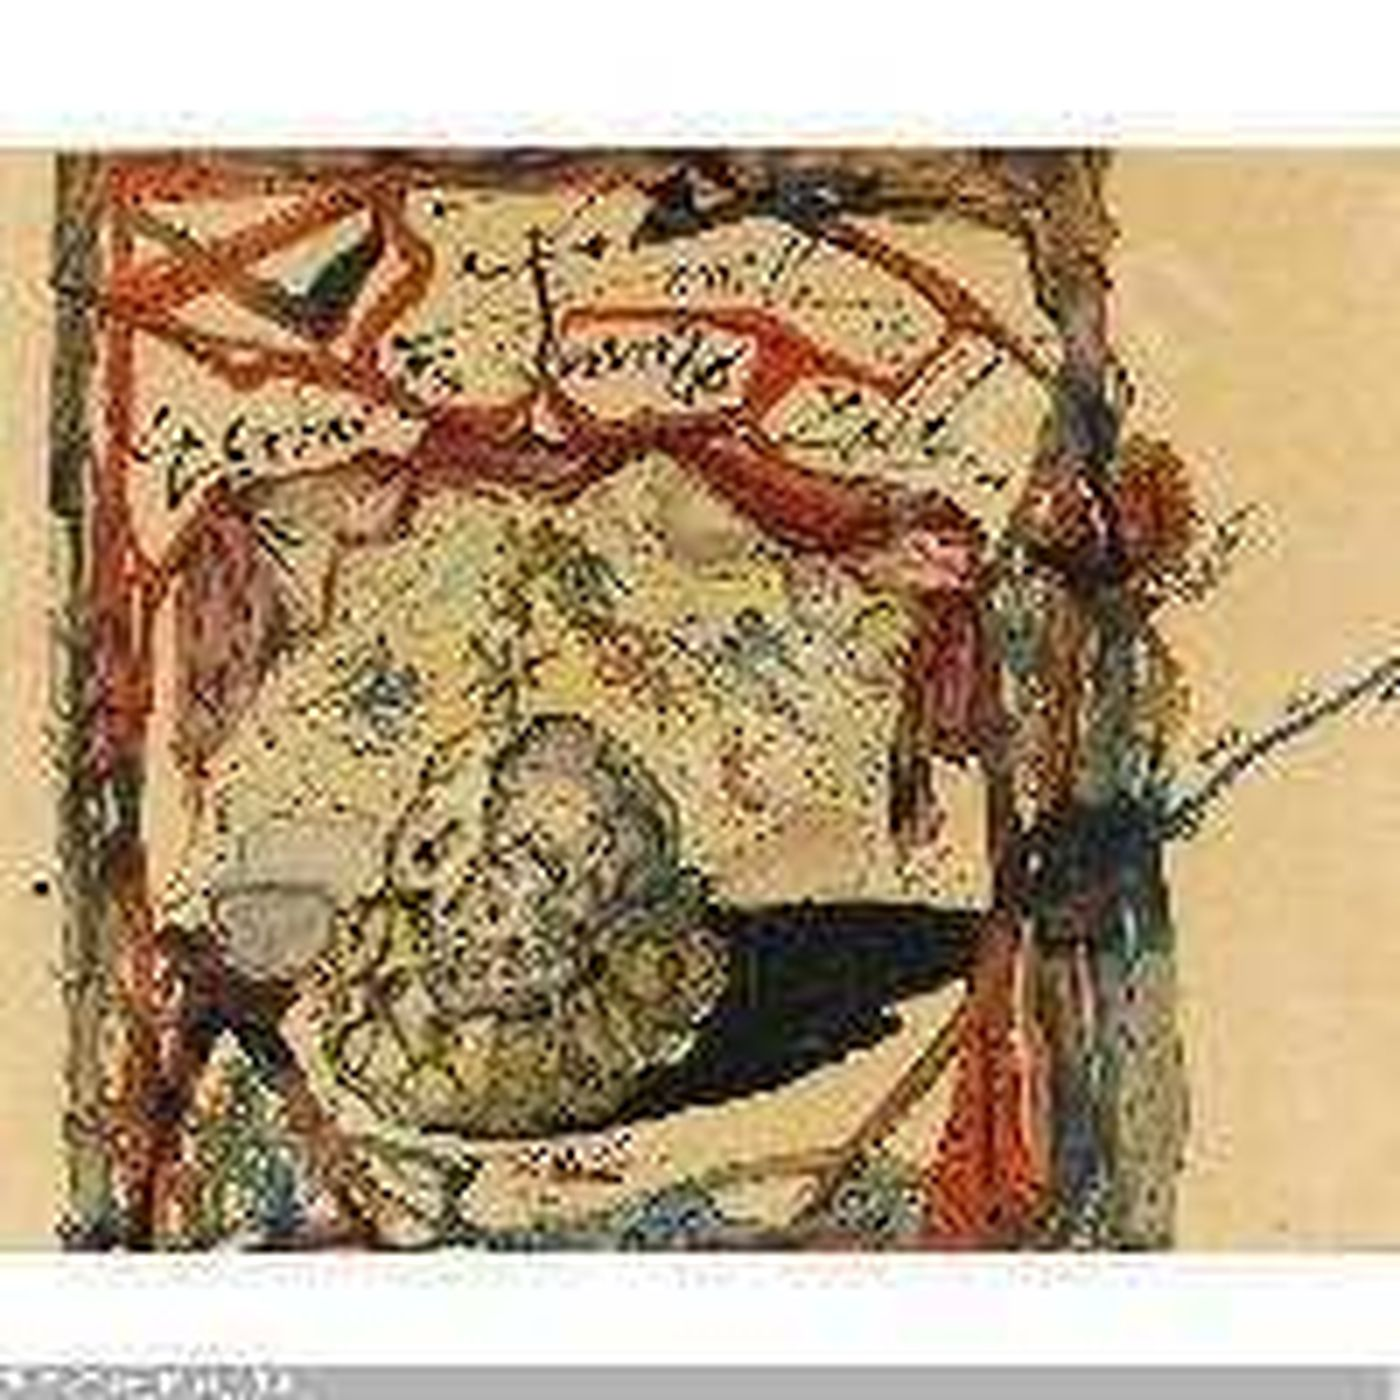 Strangely, stolen Salvador Dali painting reappears by mail